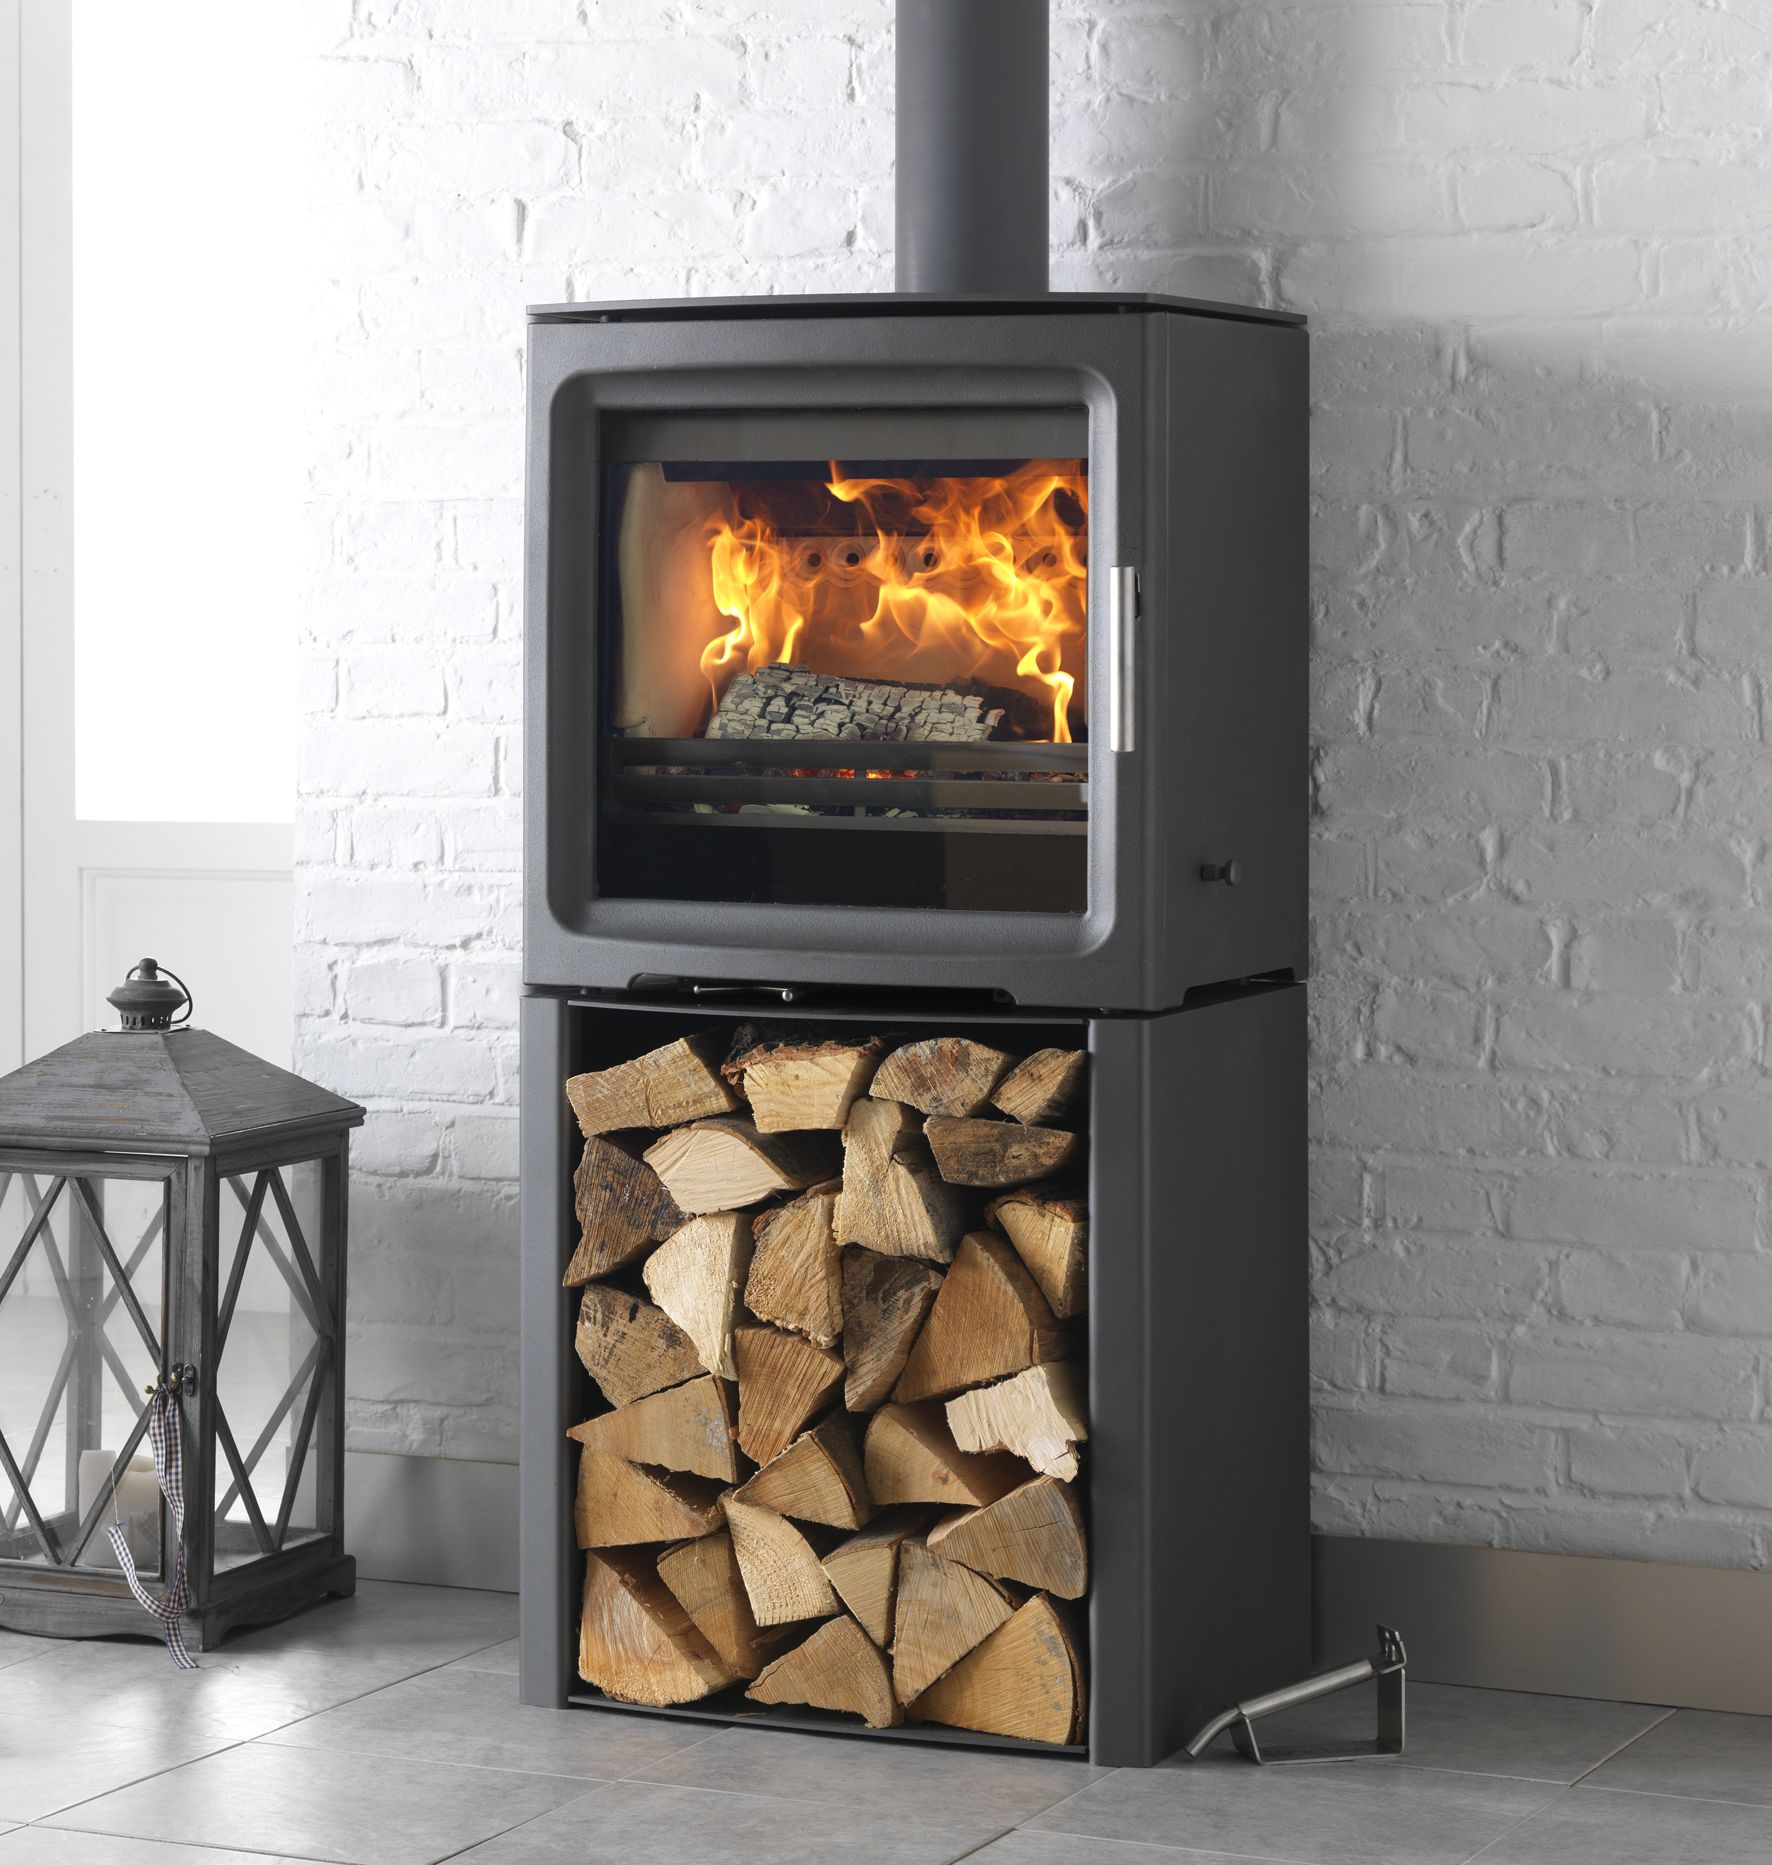 Purevision kw wide freestanding stove on log store to learn more